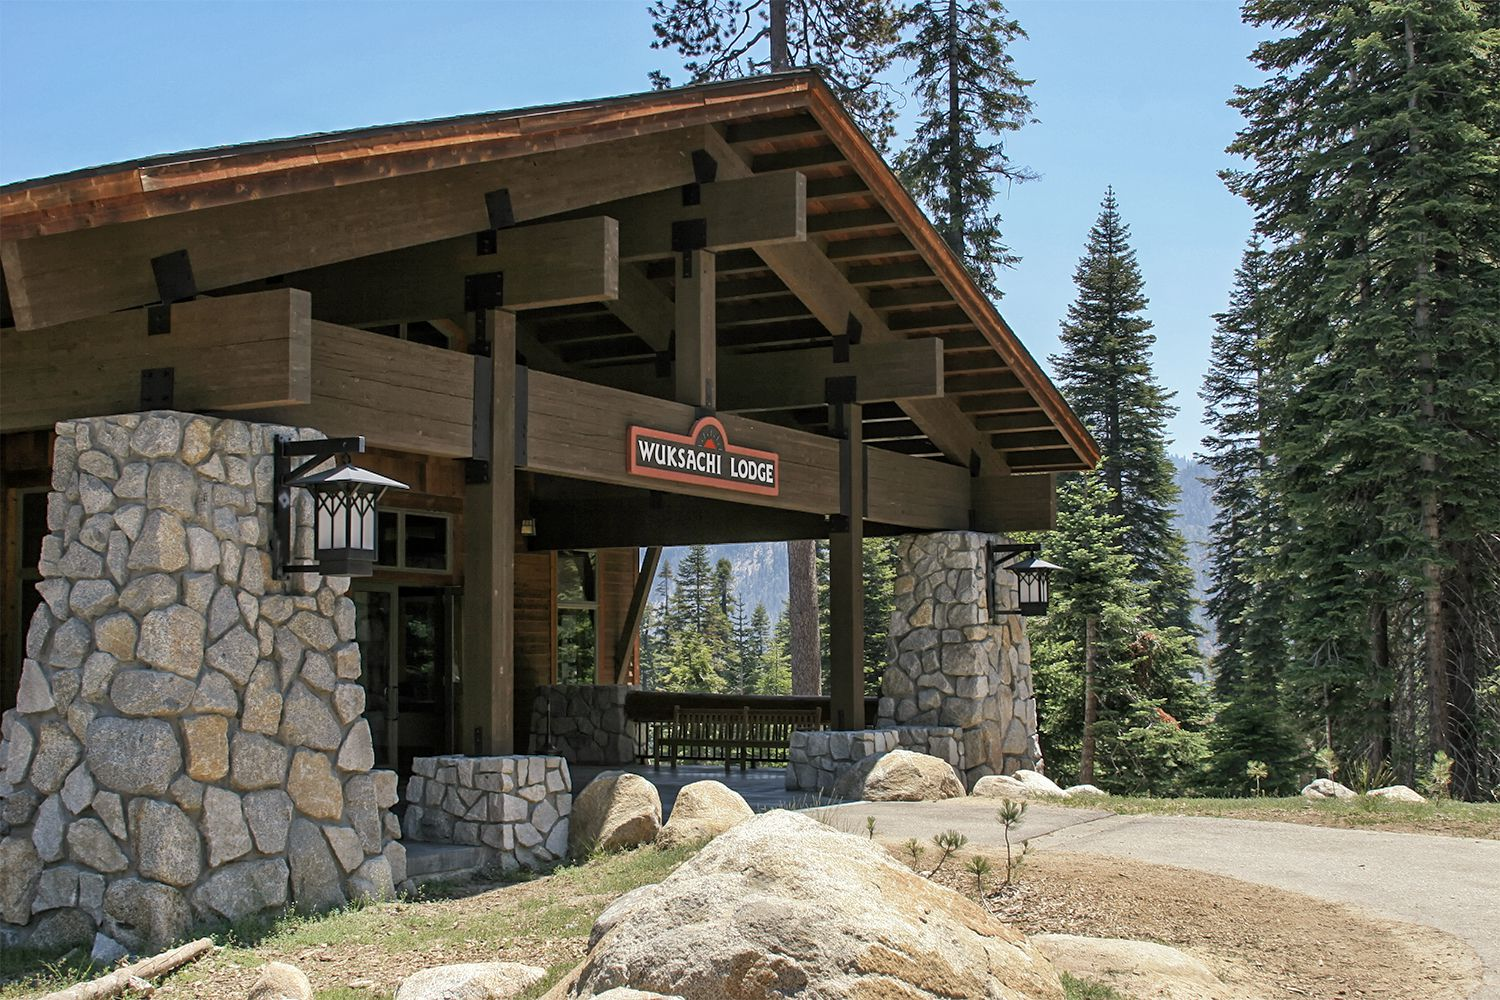 parks to do kings sequoiakingsnationalparks what cabins canyon california things in visit nationalparks national vc sequoia attraction rf park